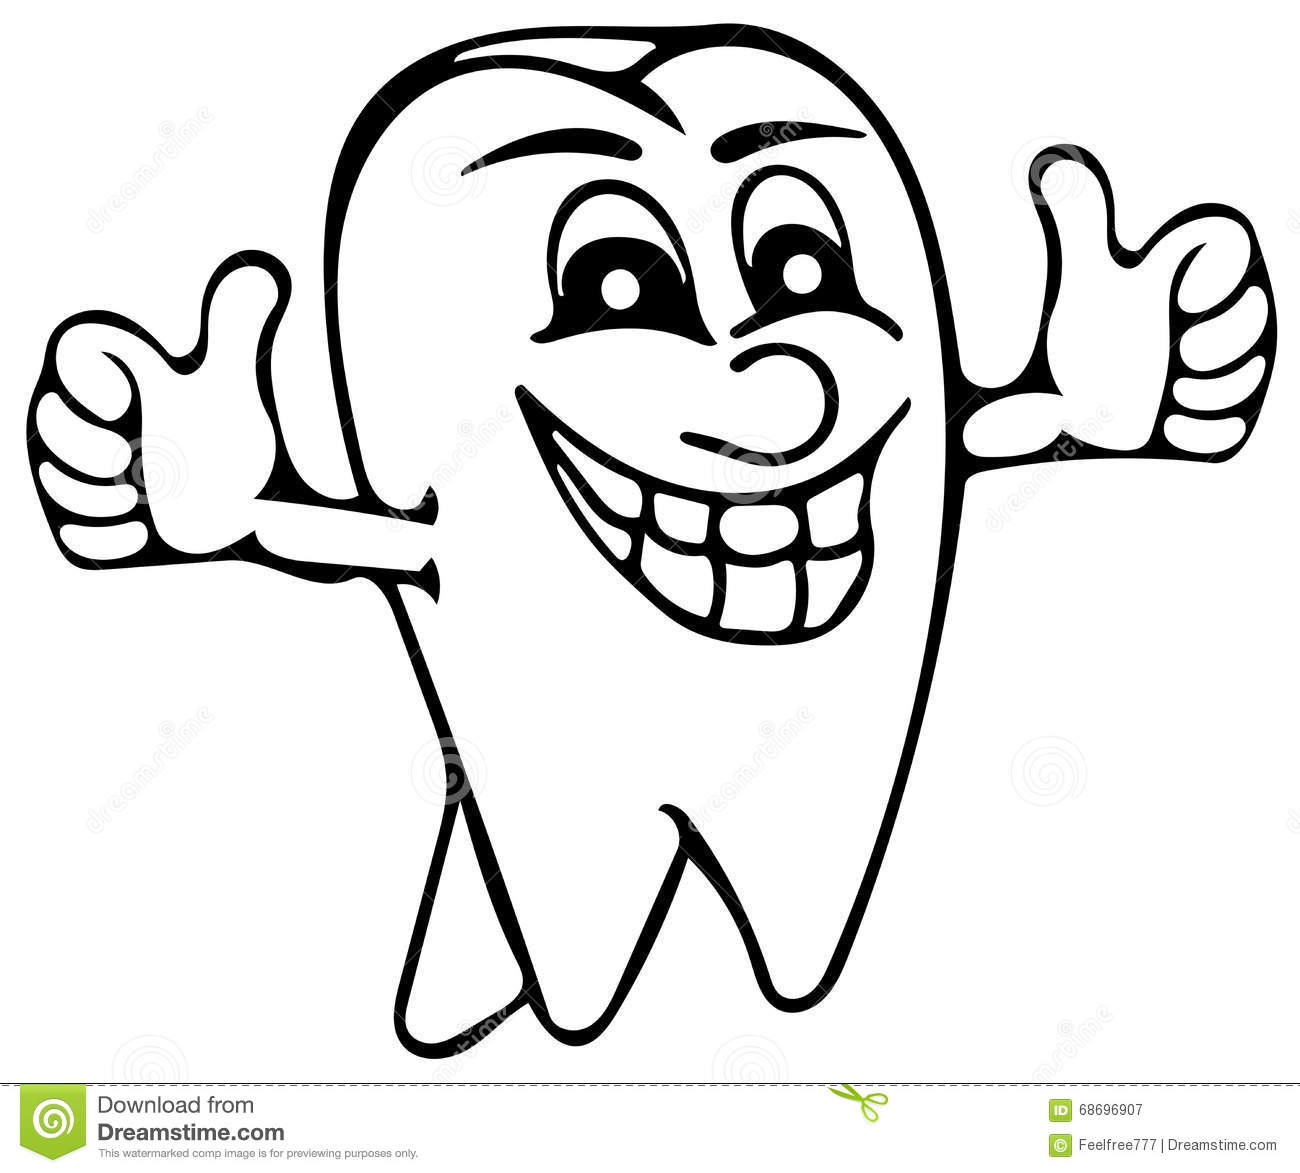 Tooth coloring pages stock illustration. Illustration of candies ...